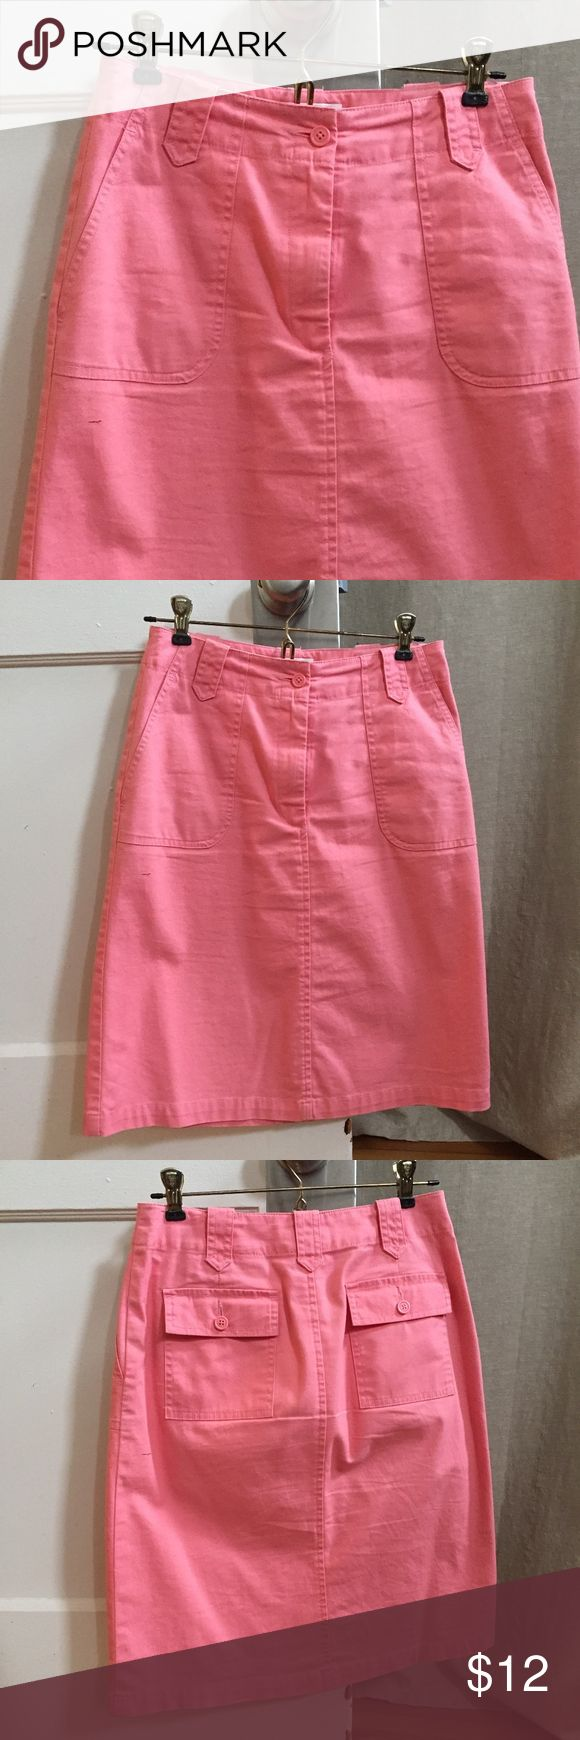 Talbots High waisted A-line Skirt Talbots High waisted A-line Skirt. Coral stretch cotton, patch back pockets, knee length. Excellent used condition. Size 2 Petite.  Dreaming of spring & summer: pair this with espadrilles and a Breton tee. Talbots Skirts A-Line or Full